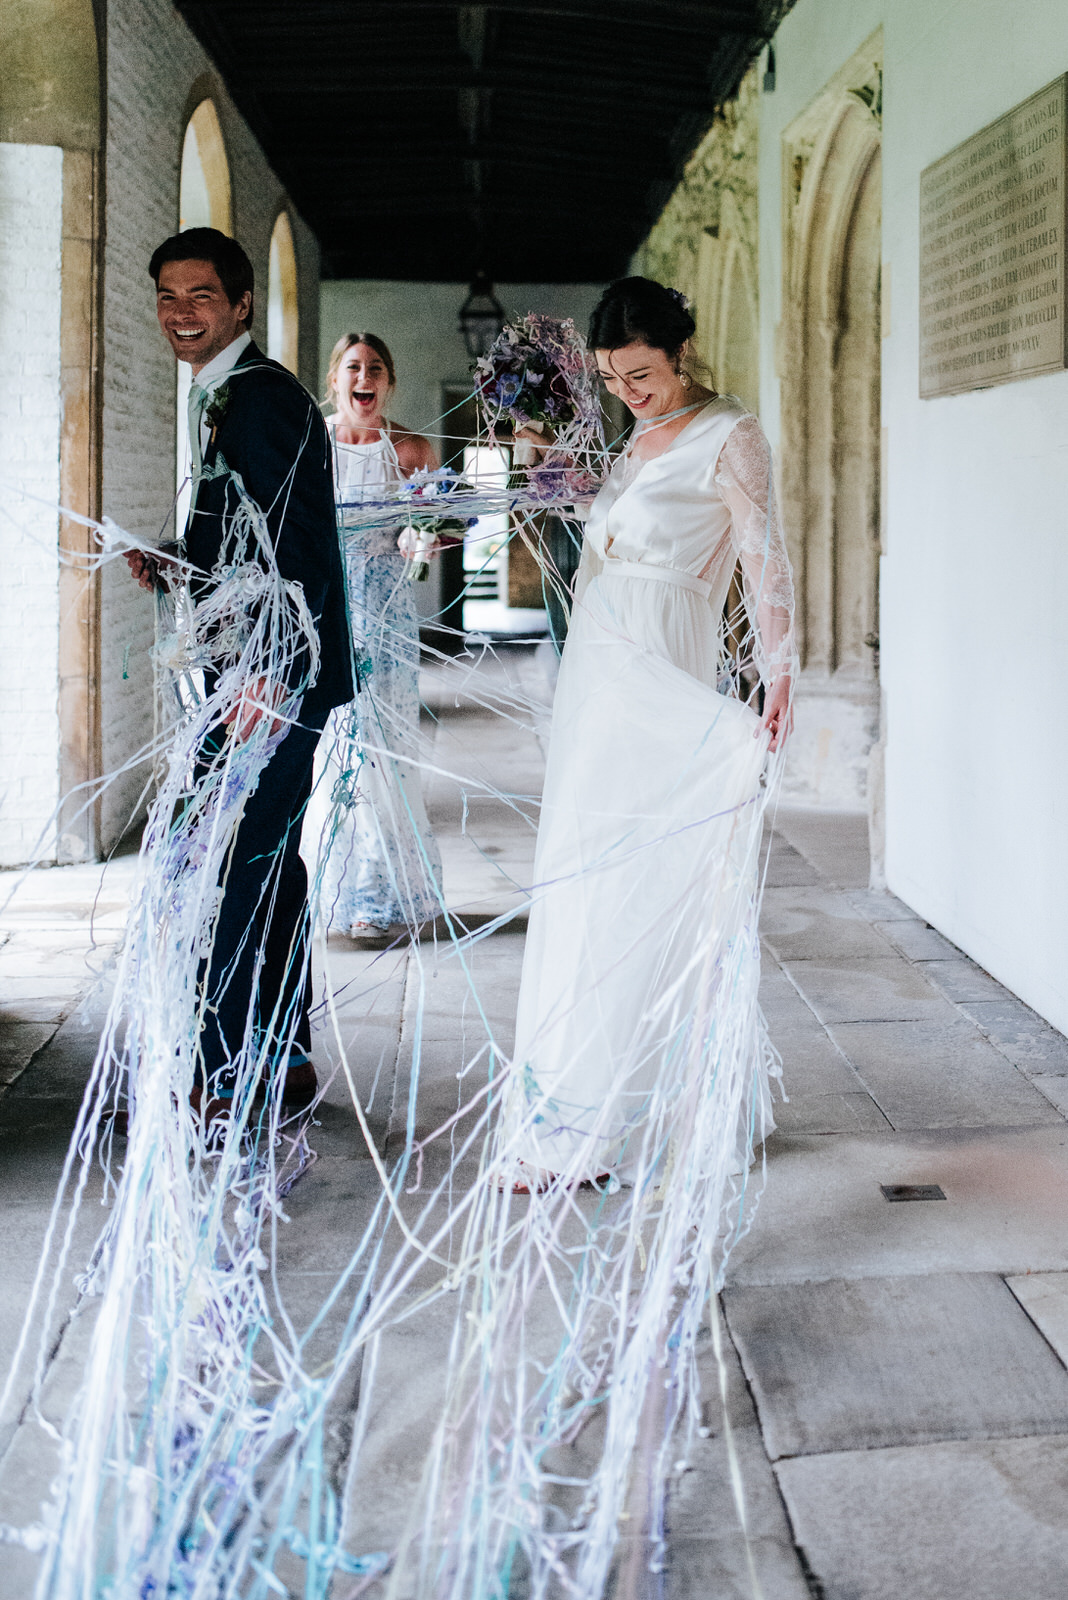 Bride and groom completely covered in strings of confetti as the